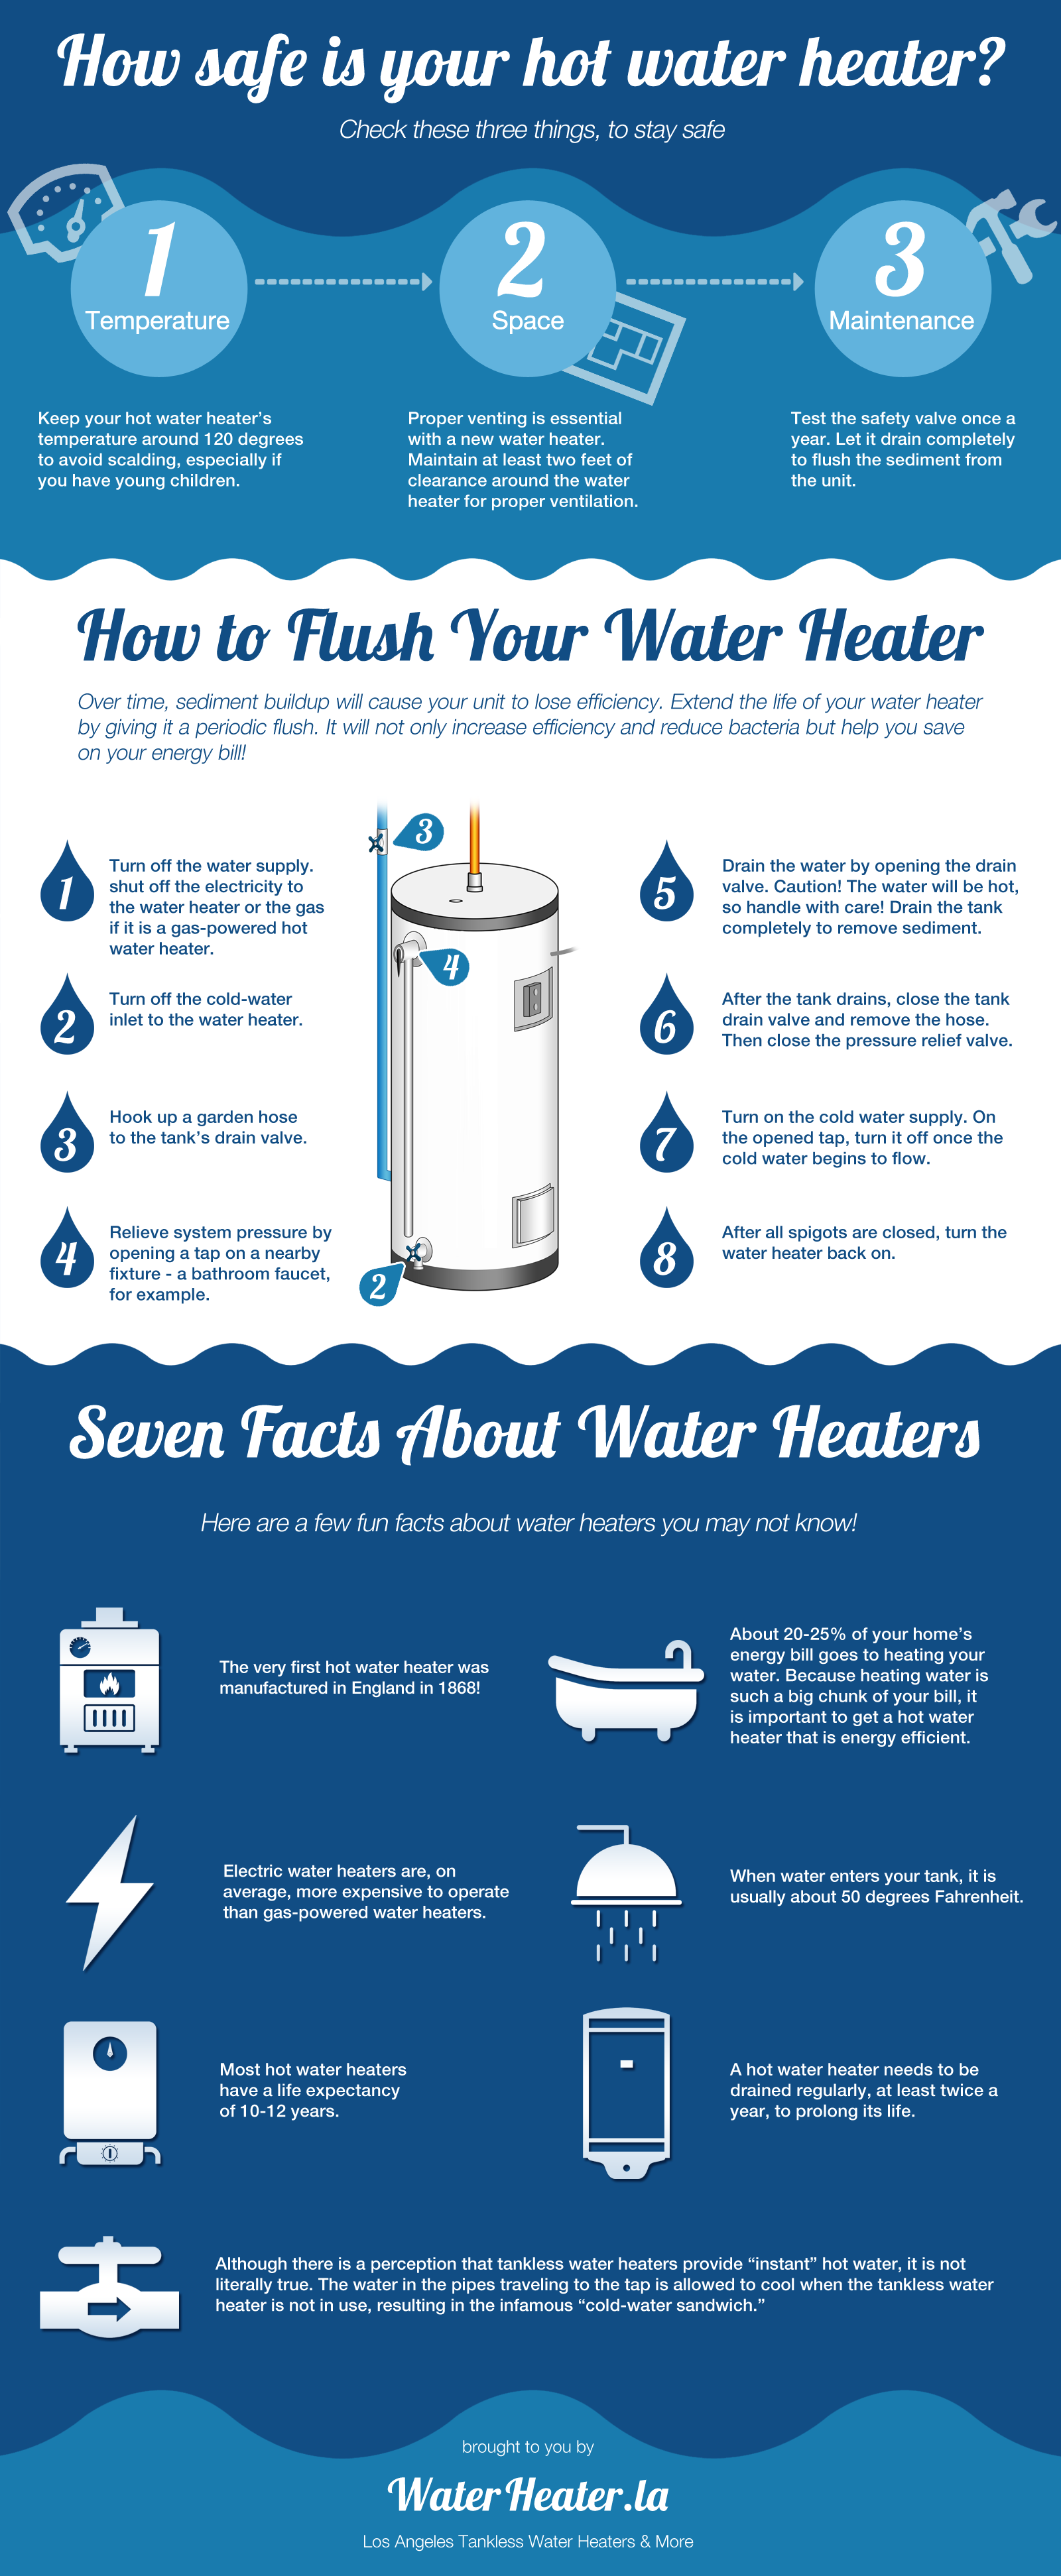 How Safe Is Your Water Heater?